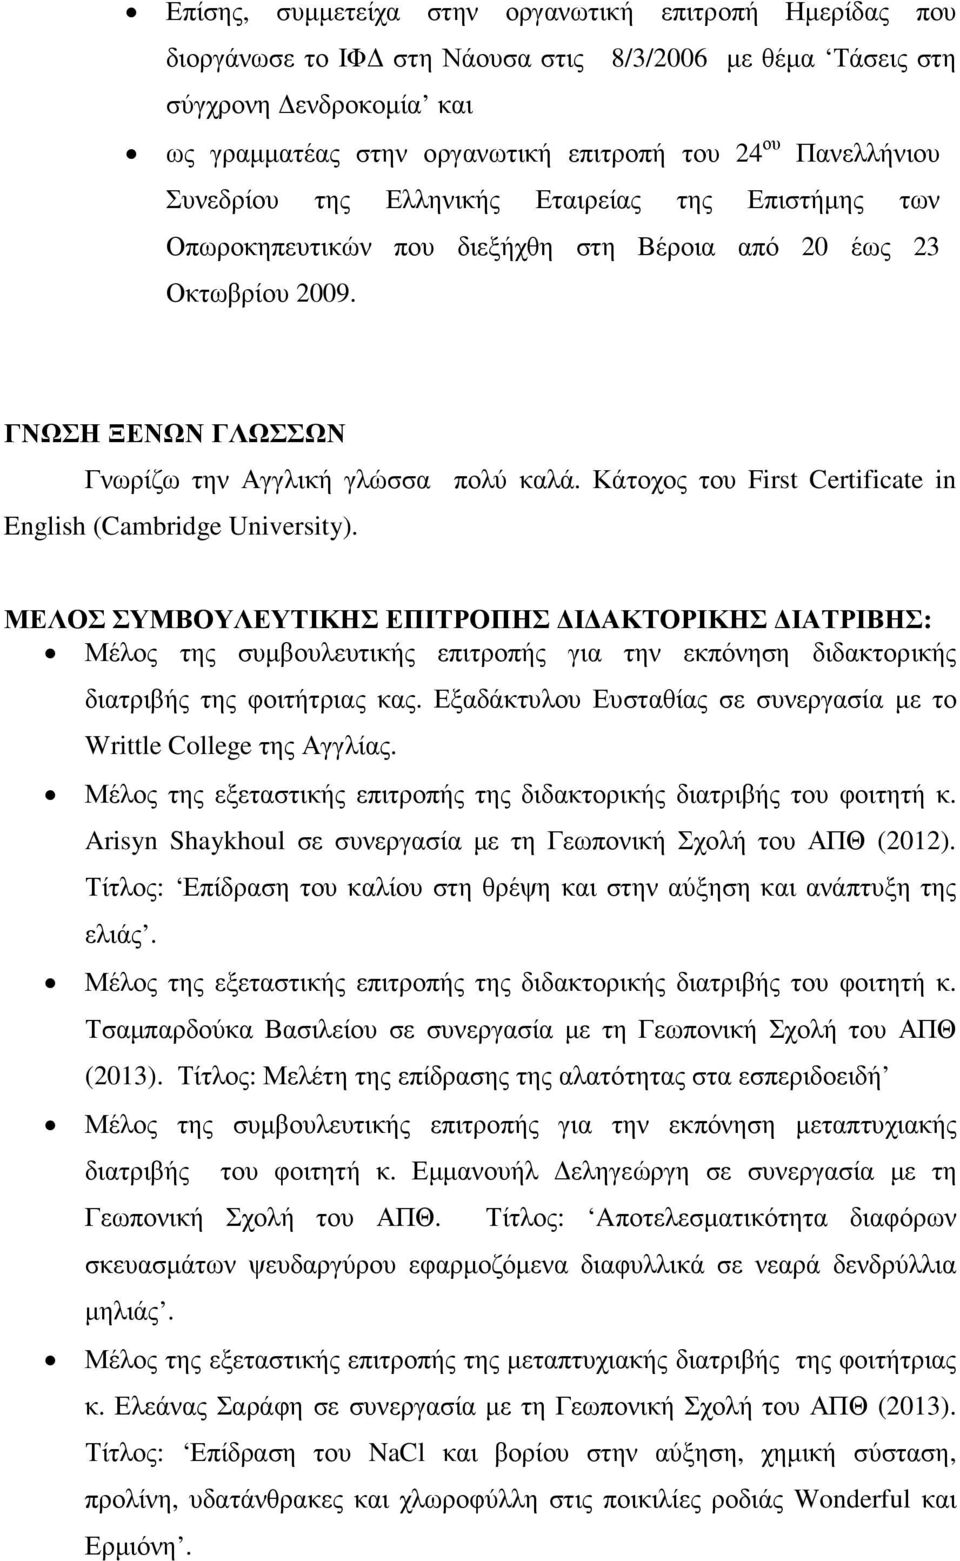 Κάτοχος του First Certificate in English (Cambridge University).